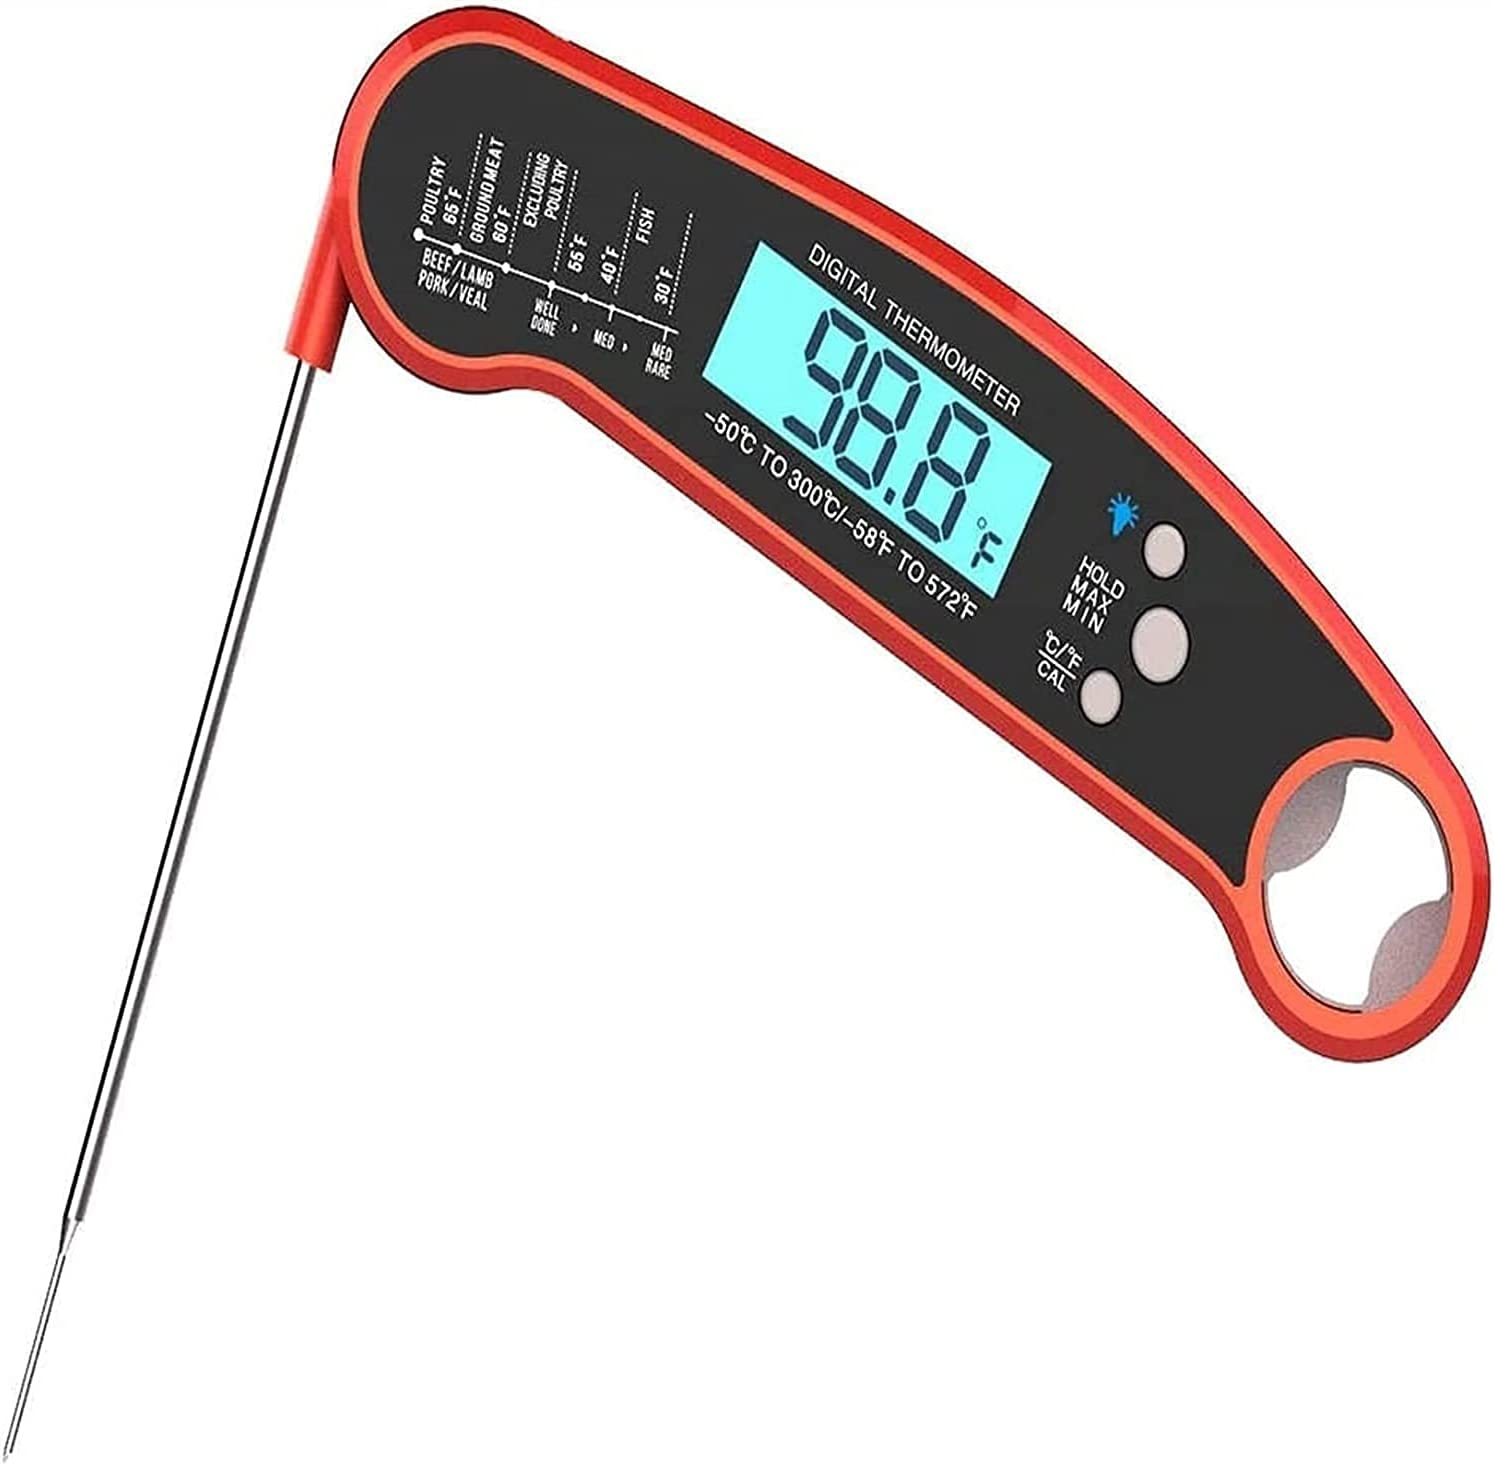 Odekai Instant Denver Mall Read Meat depot Waterproof Thermometer 2s